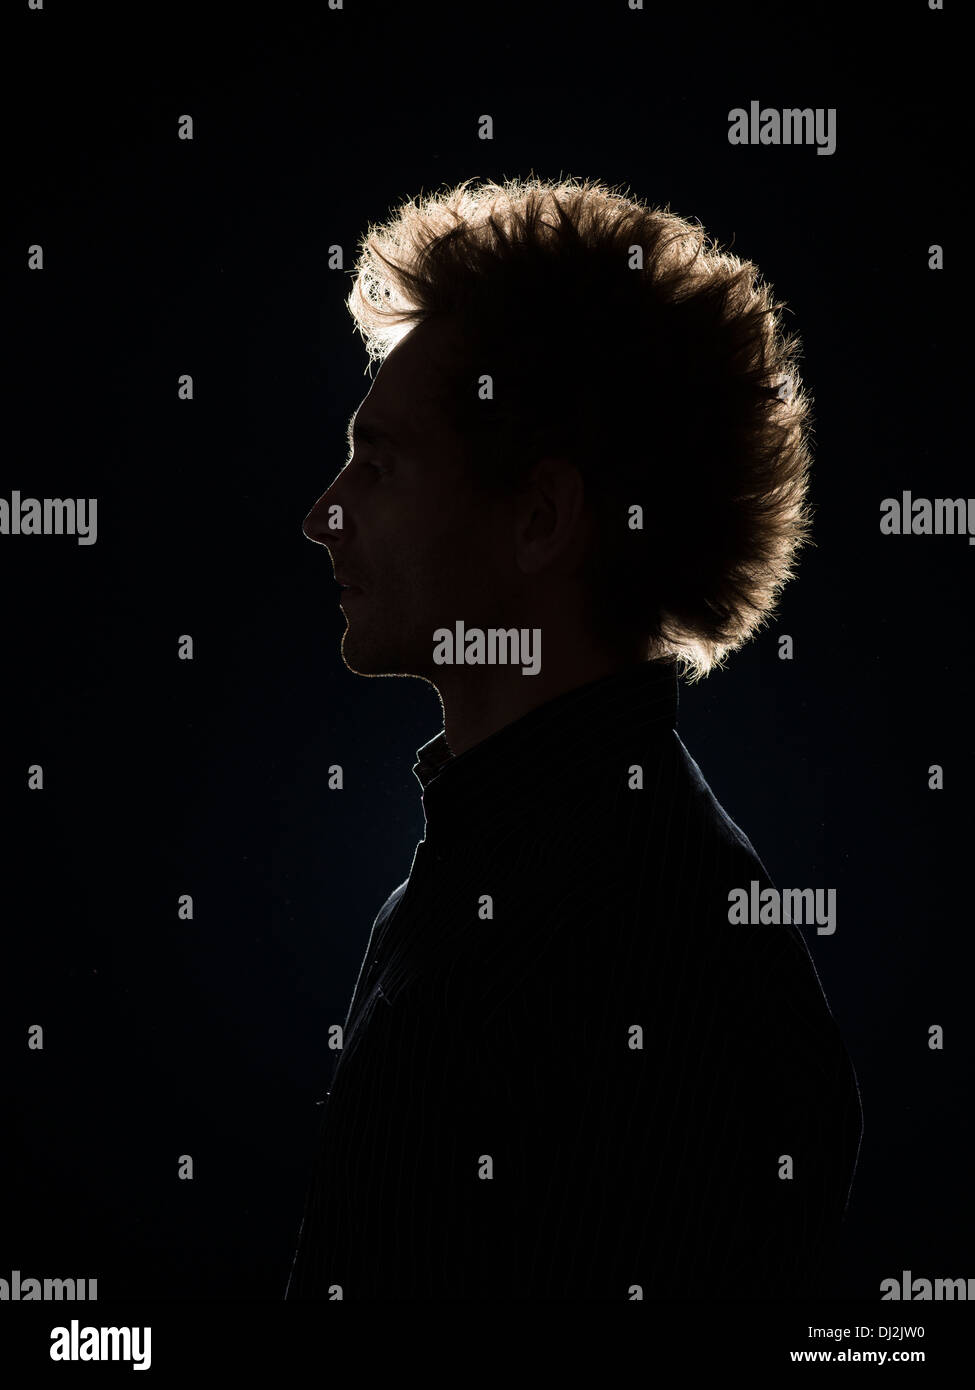 side view of man with back lighting on black background - Stock Image